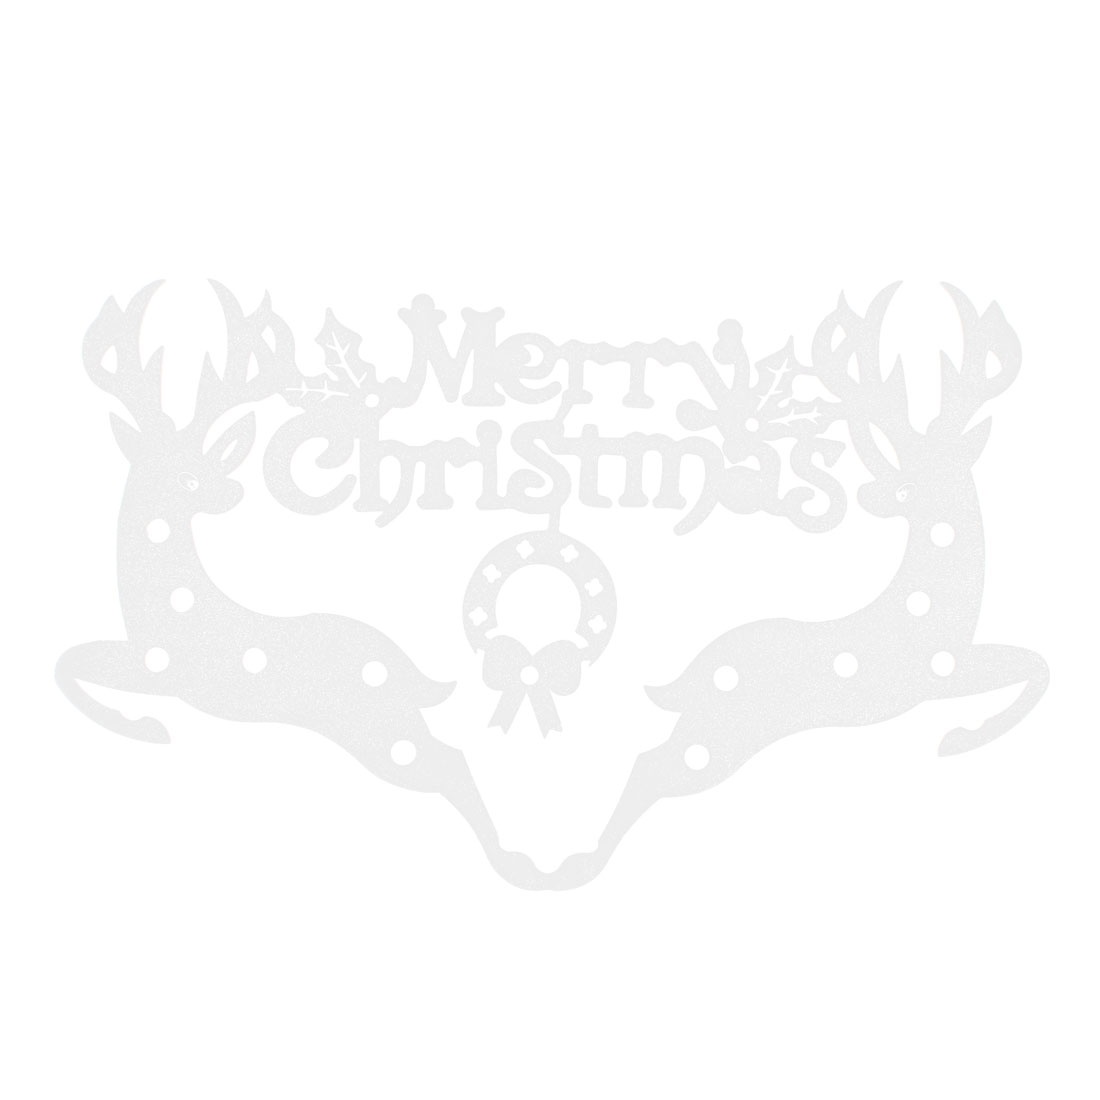 White Foam Christmas Dual Reindeer Design Xmas Stickers Wall Decals